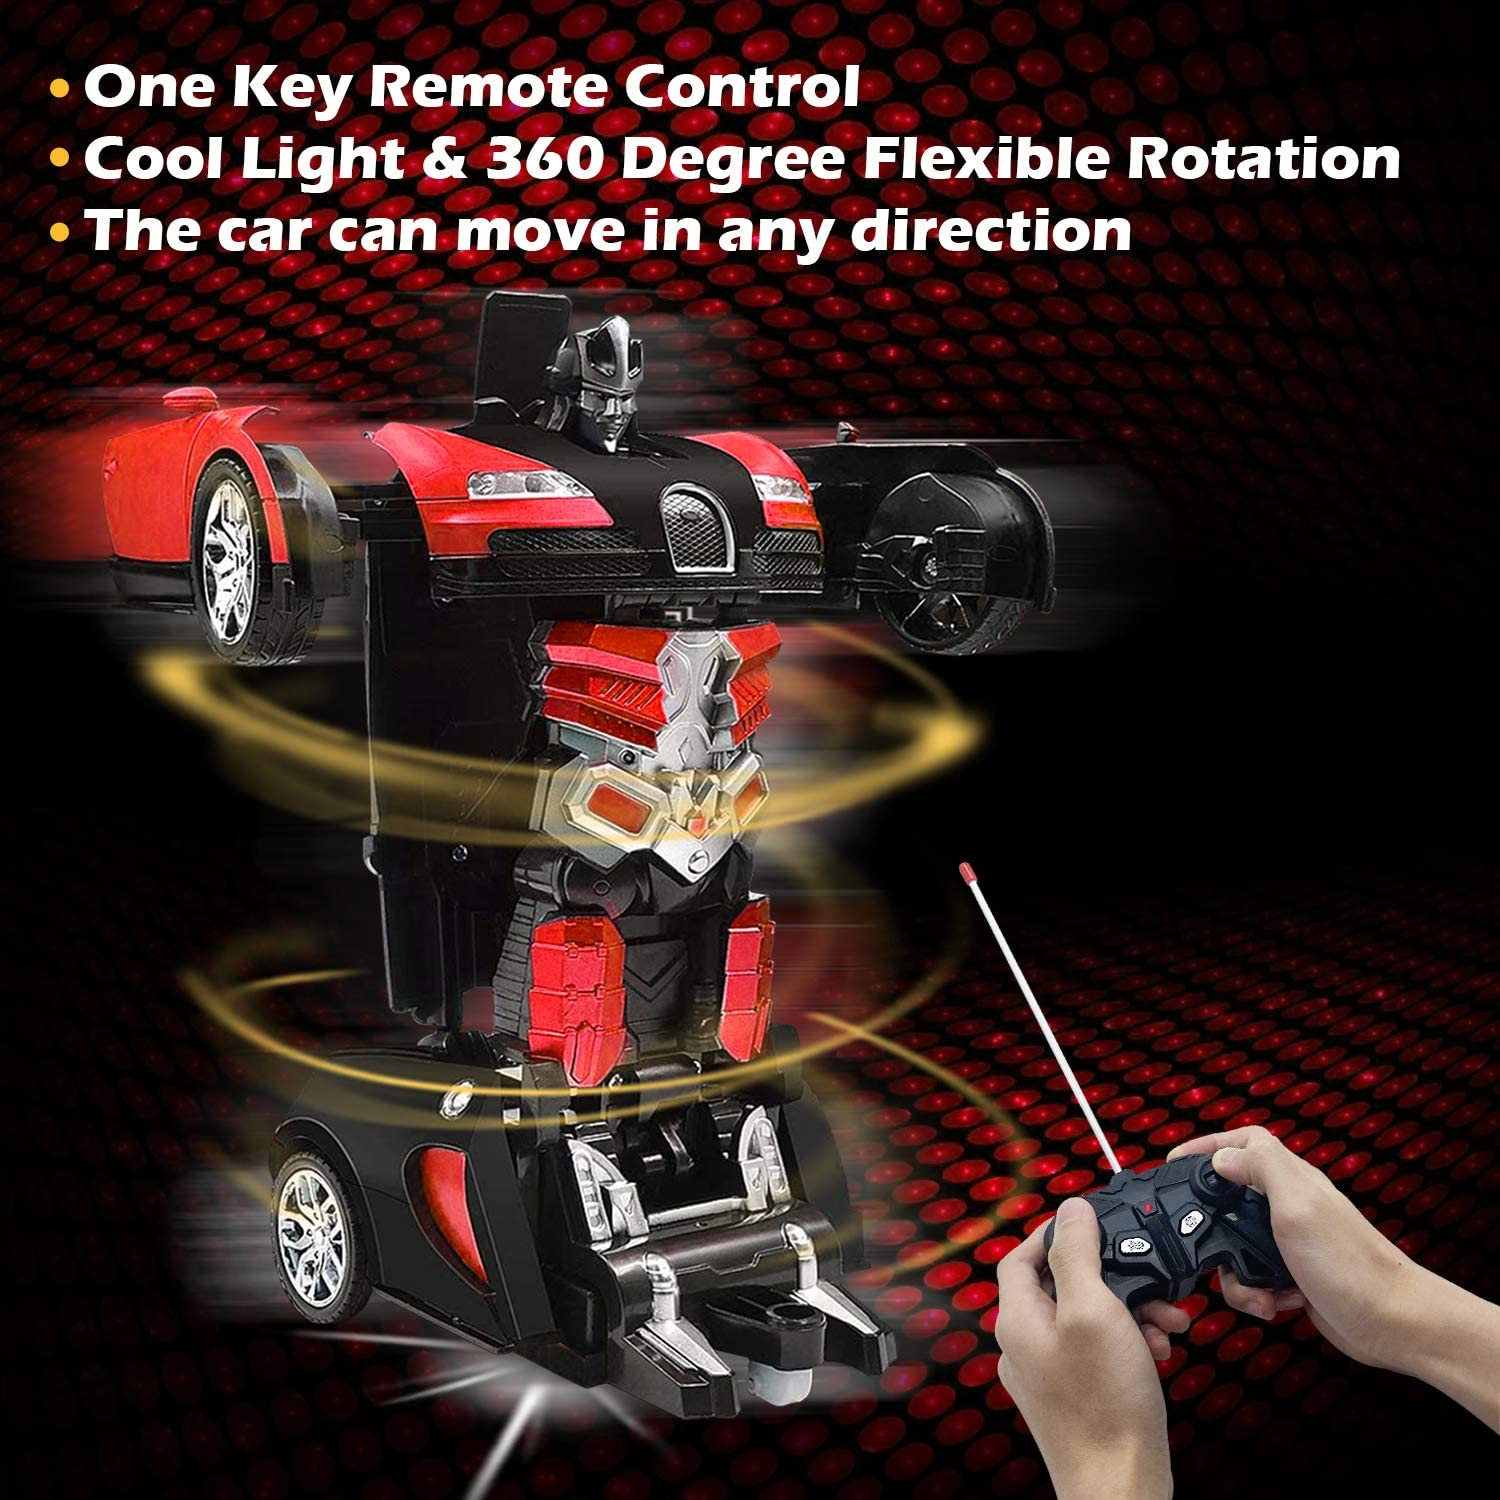 AMENON Remote Control Car Transform Car Robot Toy 2.4Ghz Deformation RC Car with Lights 1:18 Rechargeable 360/°Rotating Stunt Car Toys for Kids Boys Girls Age 6 7 8 9 10 11 Year Old Holiday Xmas Gift